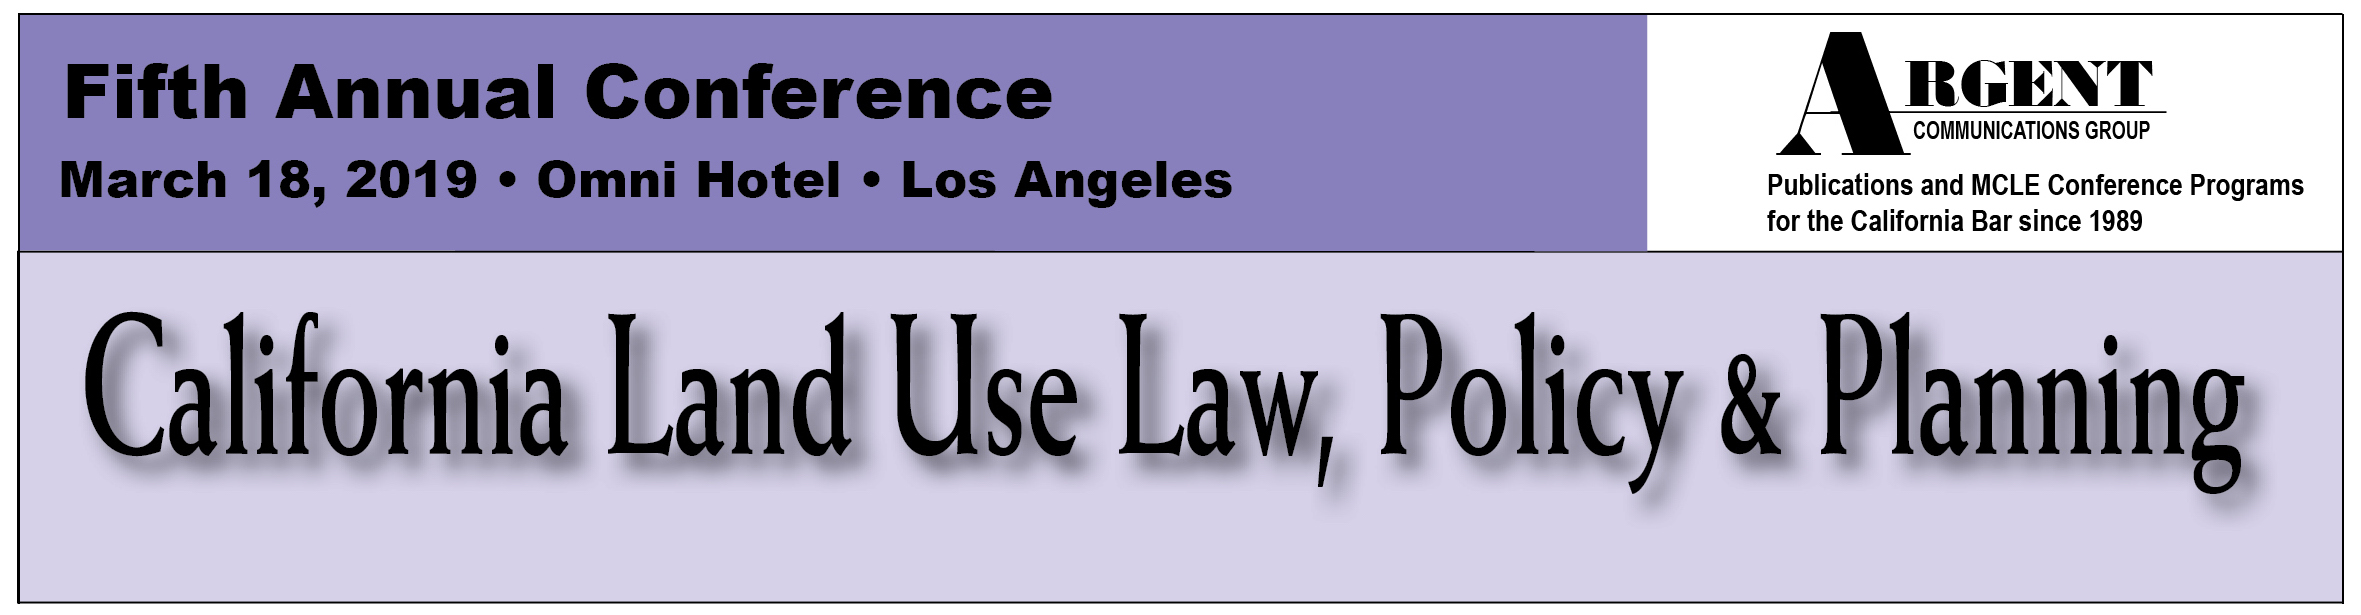 Argent California Water Law & Policy